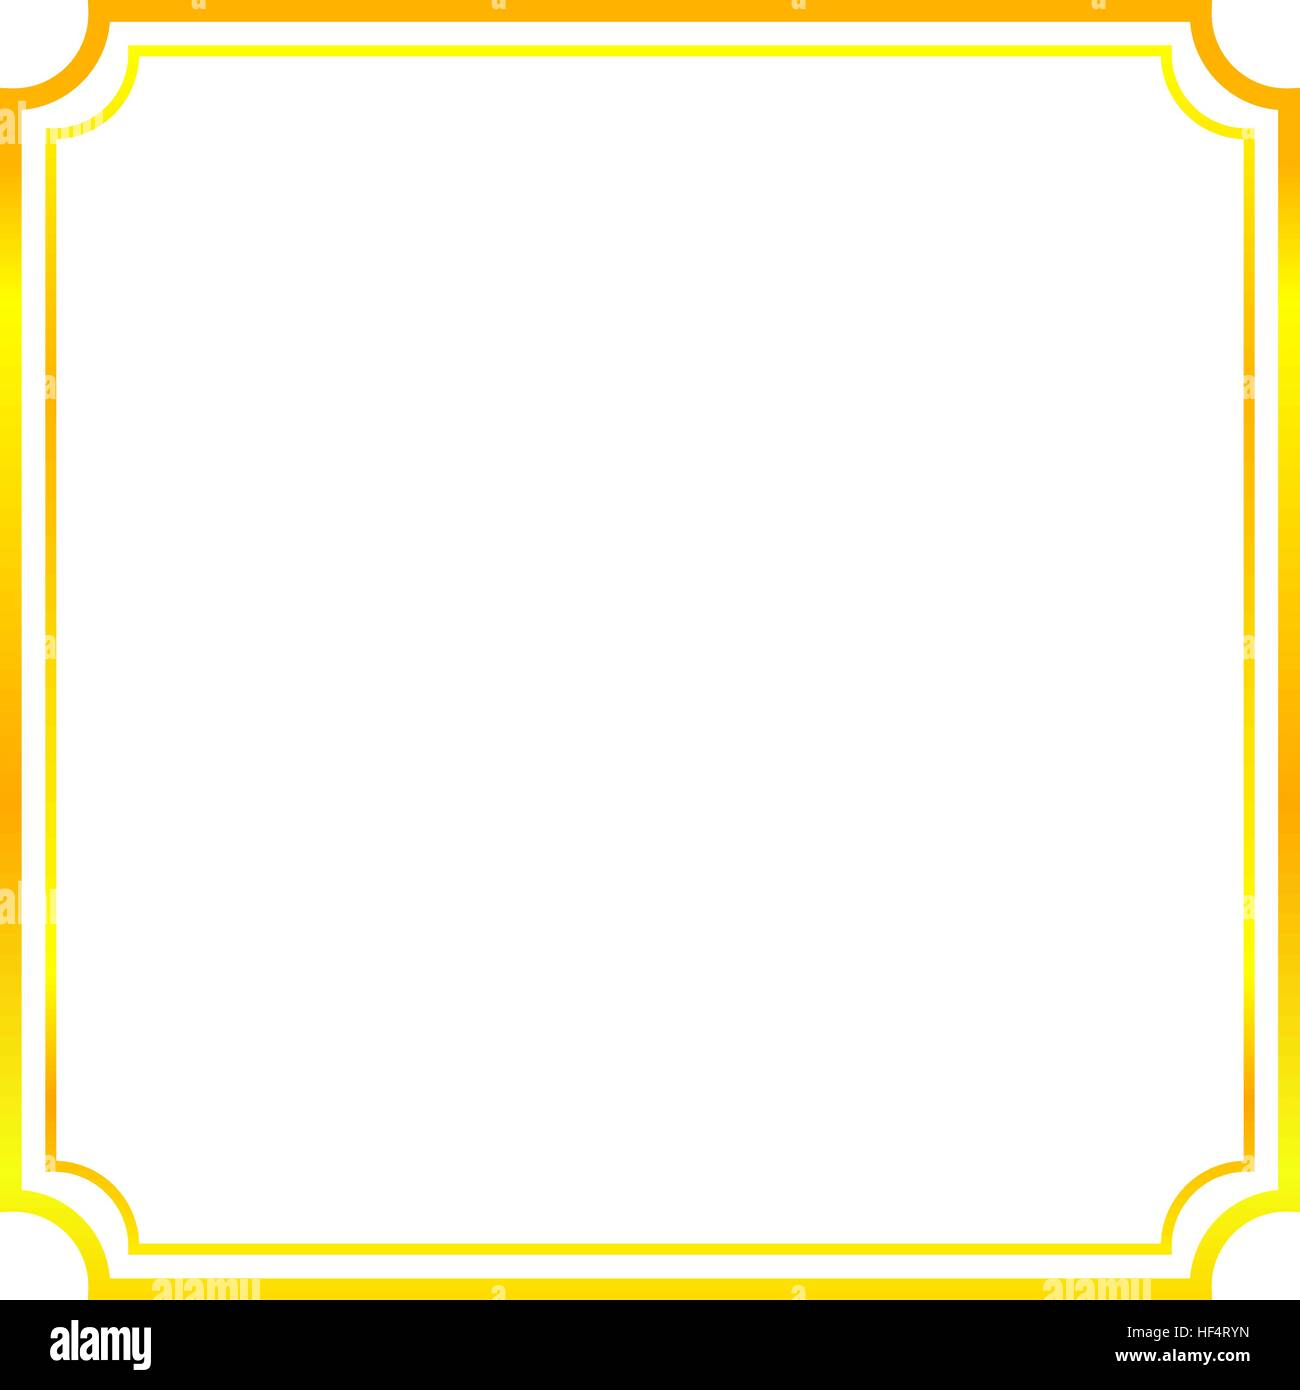 simple frame border design. Gold Frame. Beautiful Simple Golden Design. Vintage Style Decorative Border, Isolated On White Background. Deco Elegant Art Object. Empty Copy Space F Frame Border Design